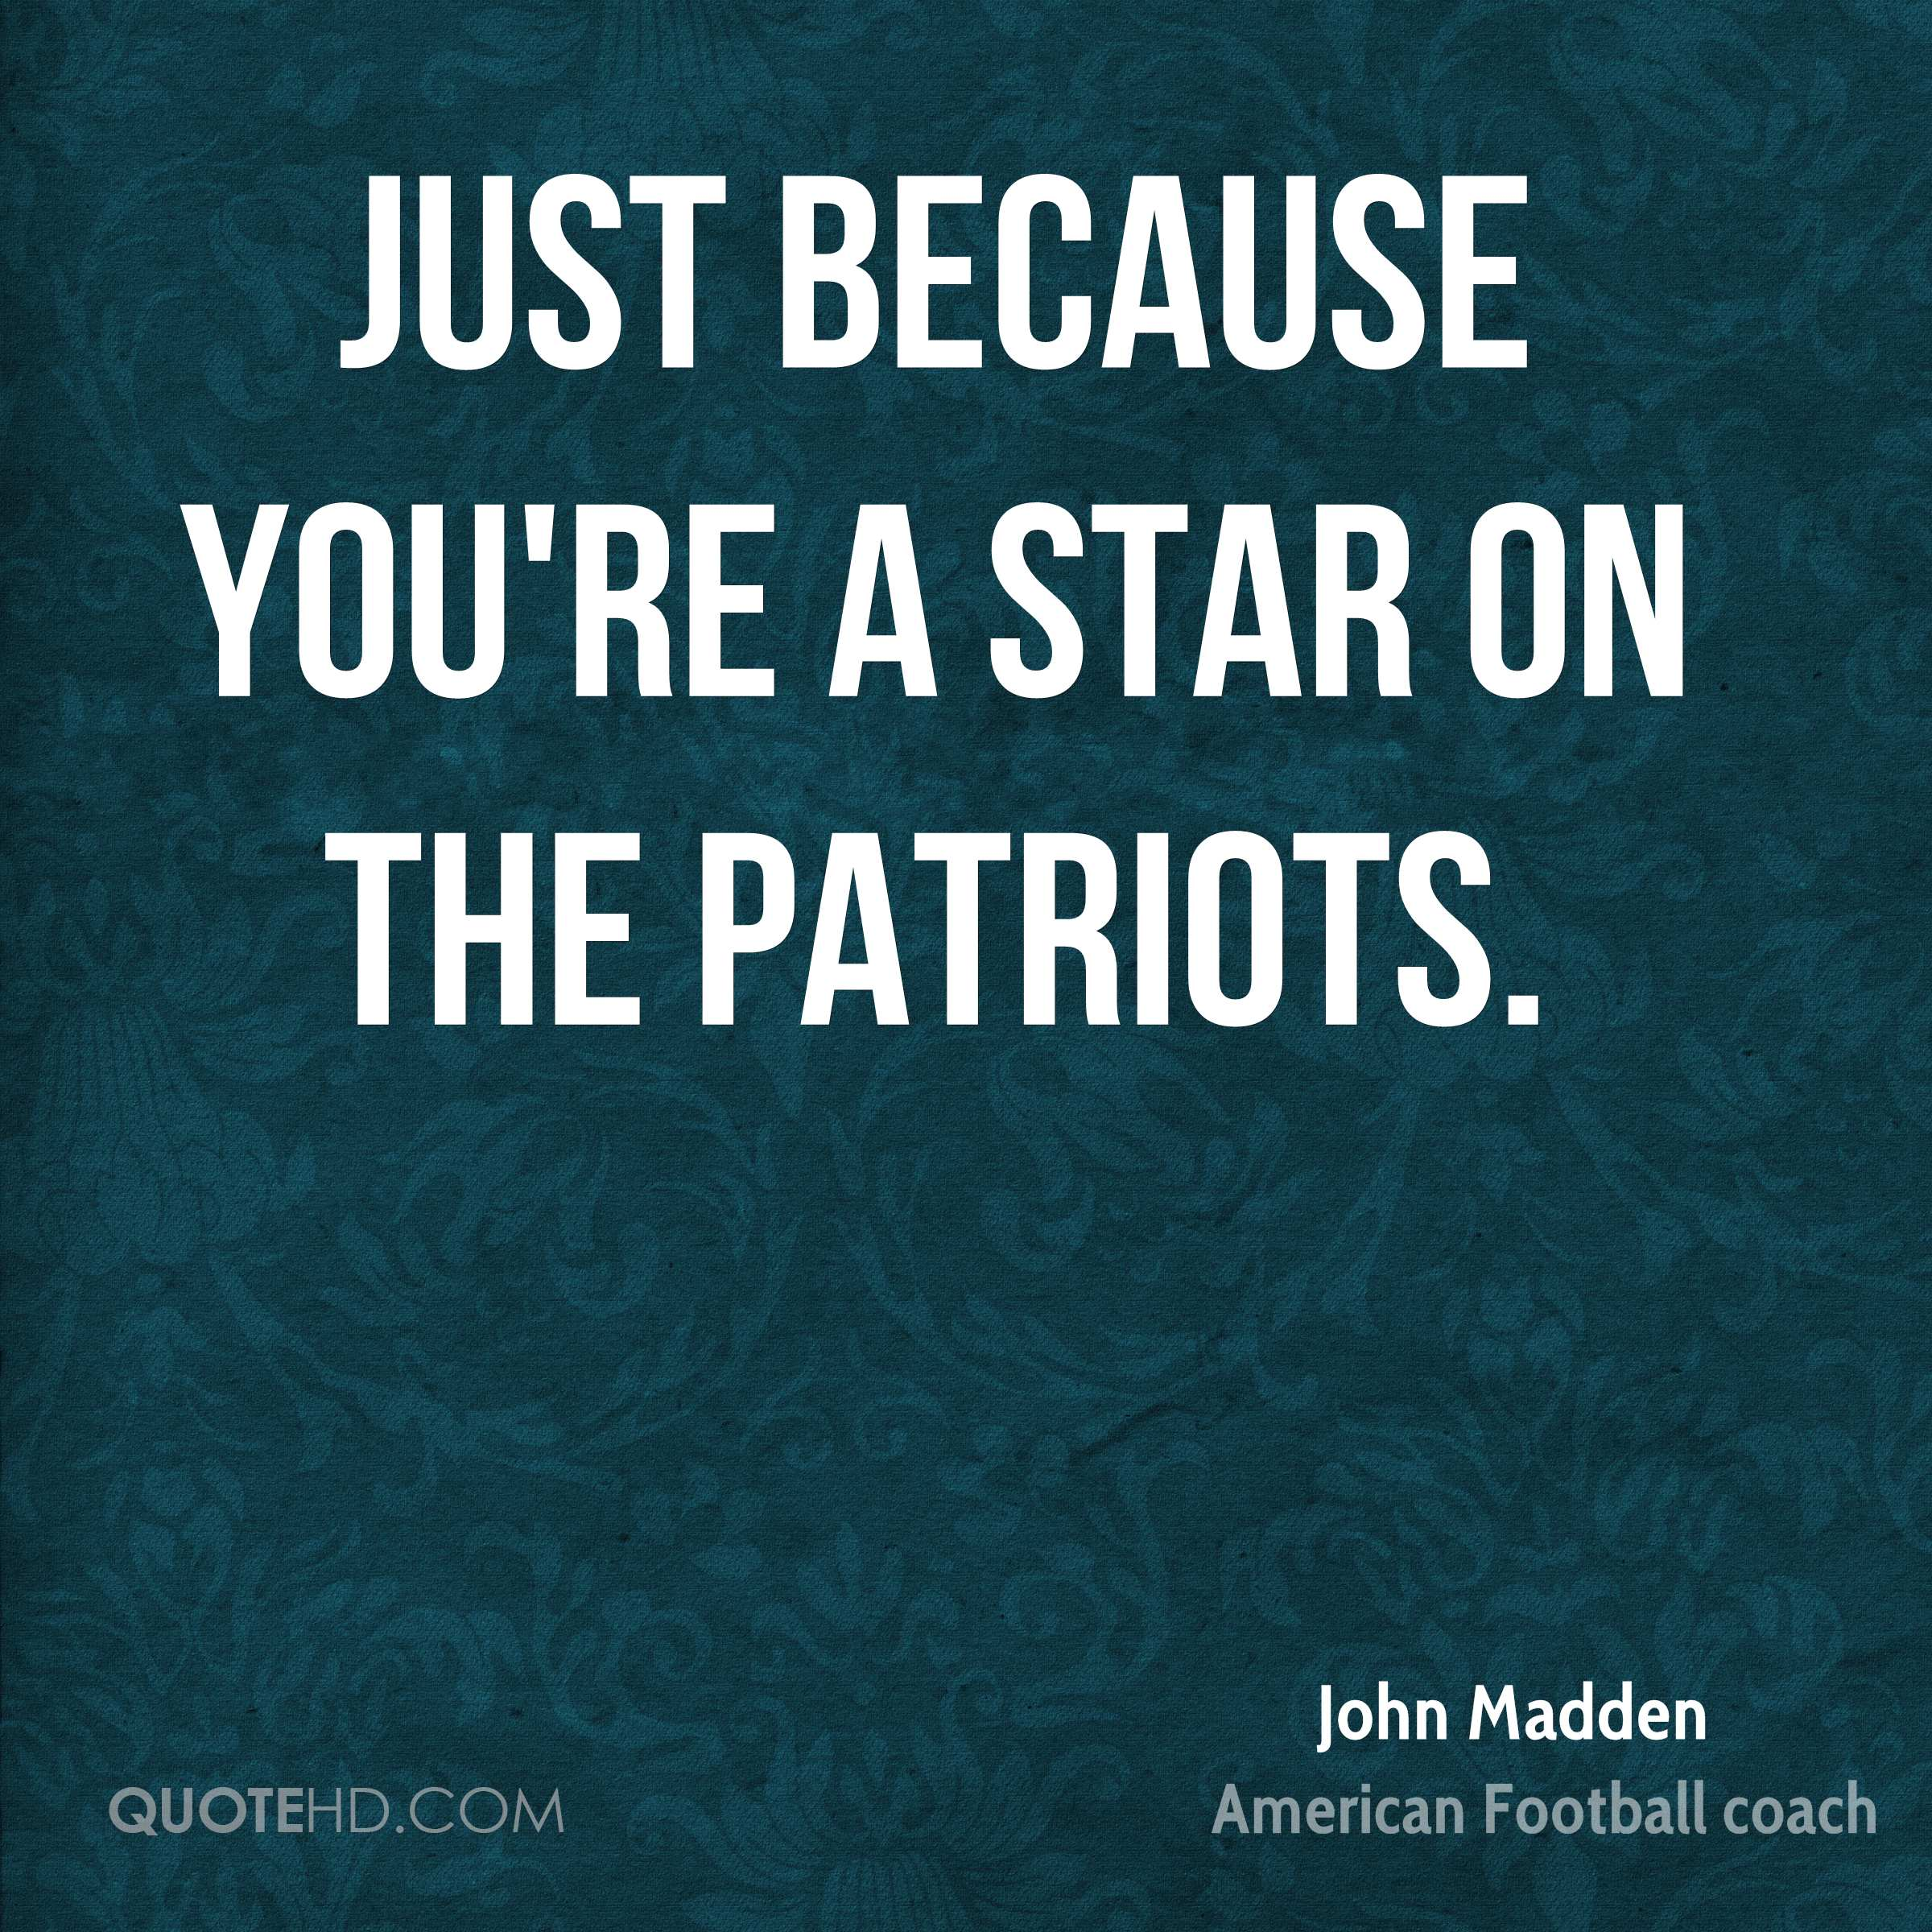 Just because you're a star on the Patriots.